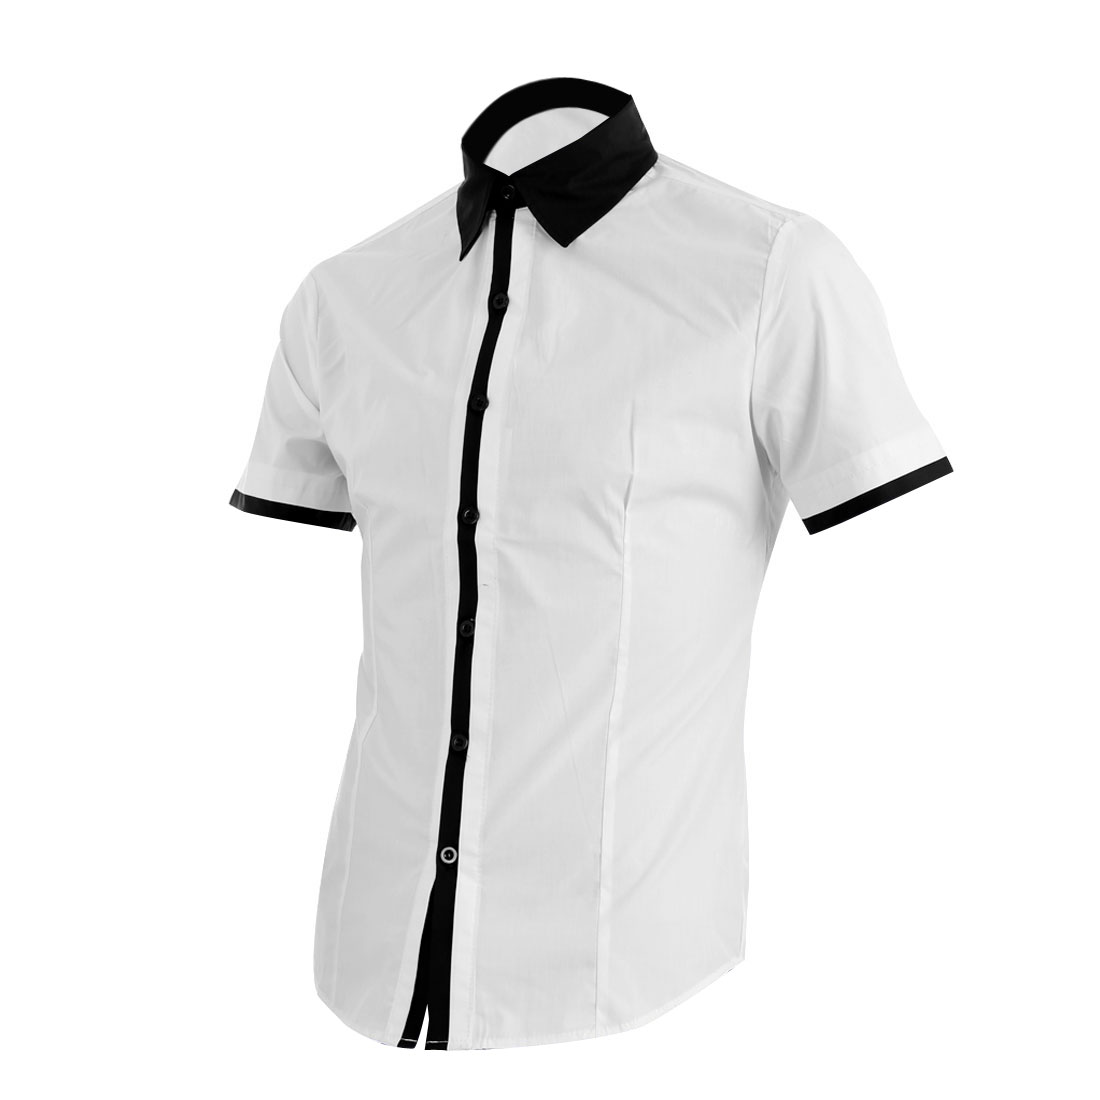 Men Point Collar Single Breasted Short Sleeve Splice Cuffs Shirt White M